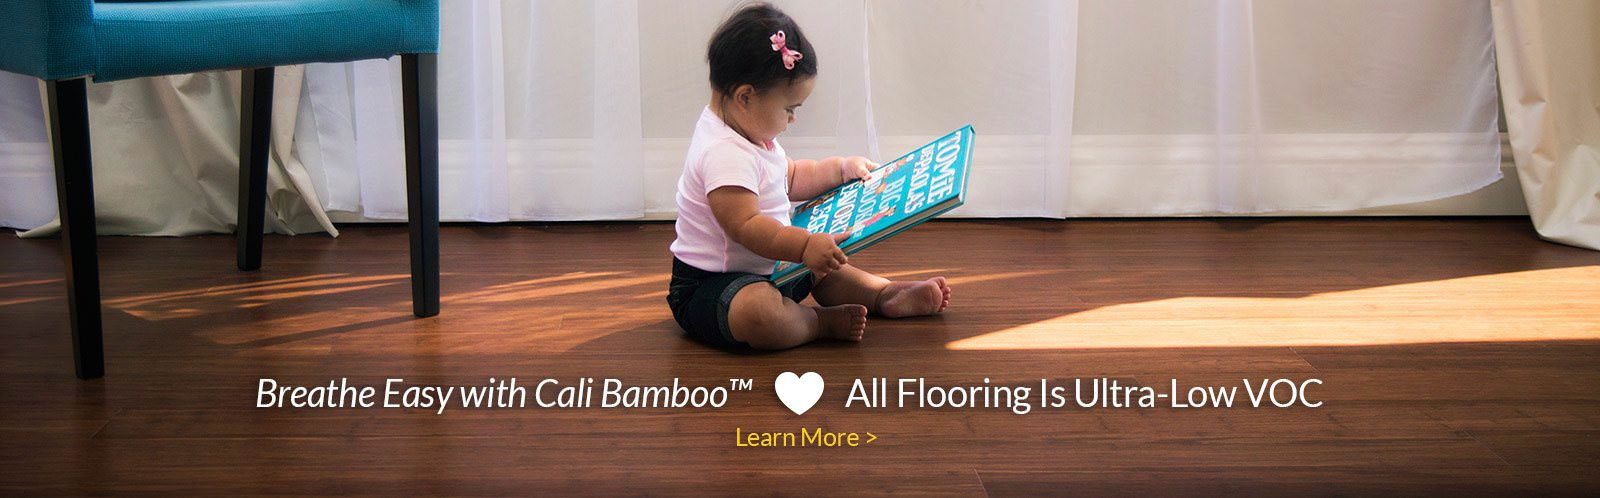 Ultra-Low VOC. Breathe Easy with Cali Bamboo!